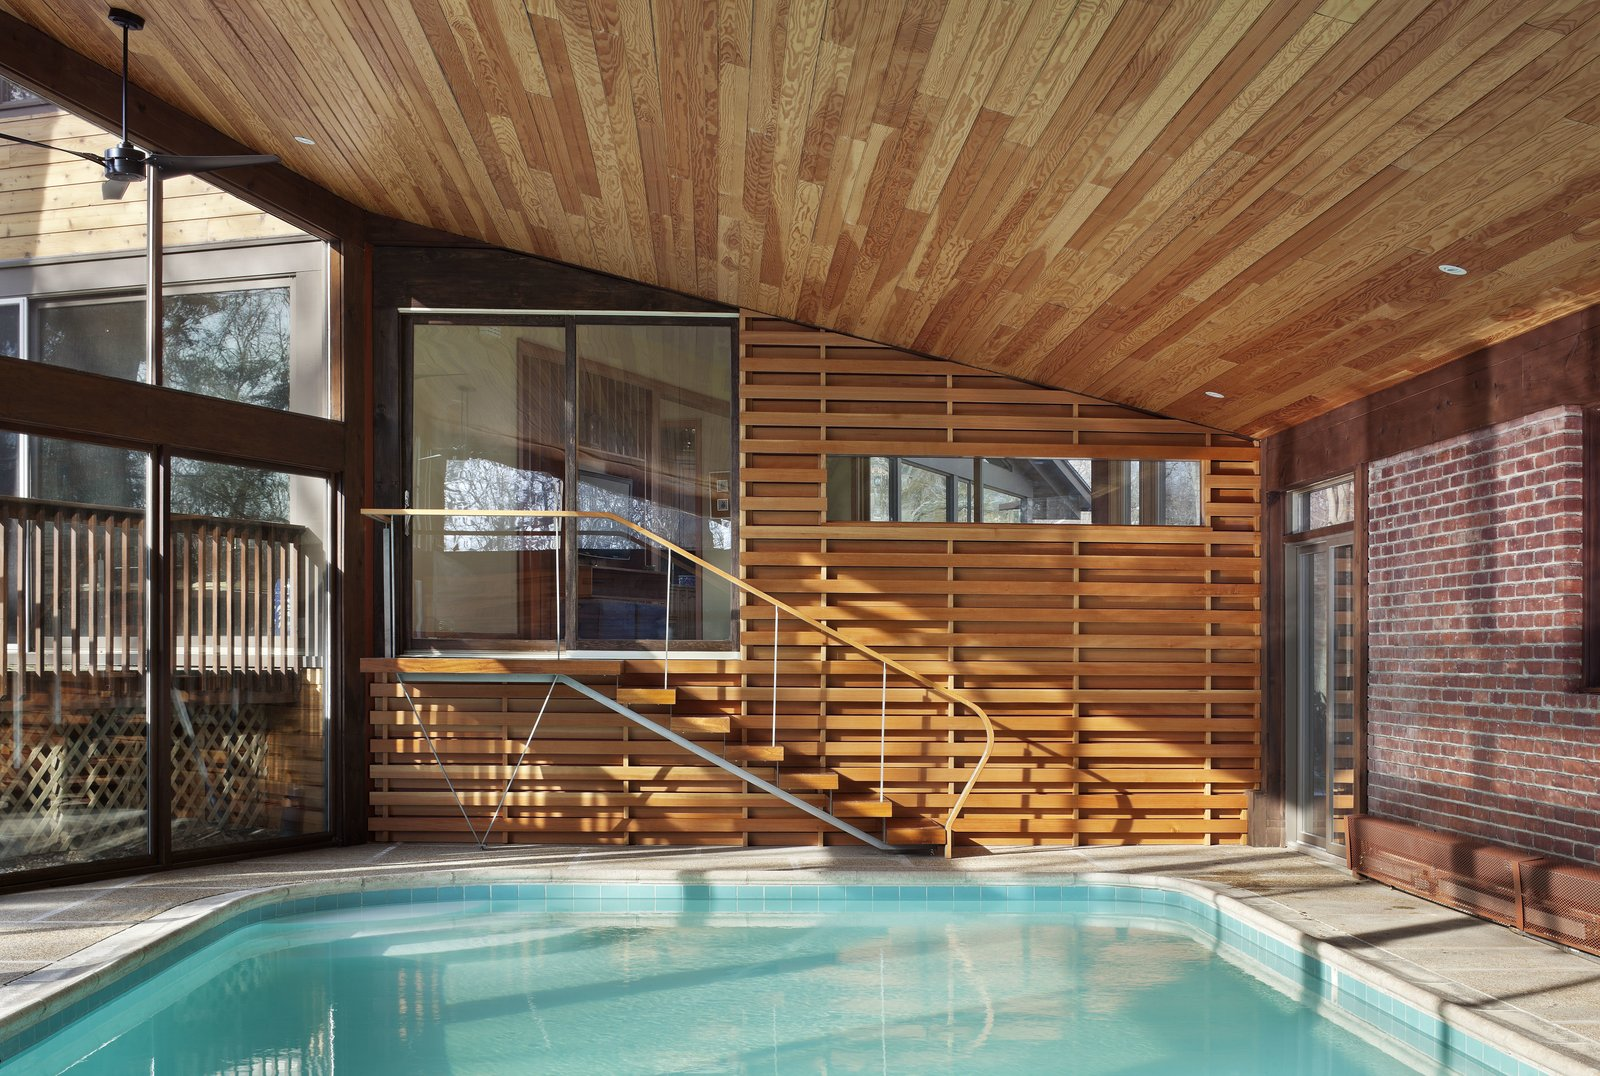 One of the biggest challenges of designing around an indoor pool was managing the humidity, especially with a sloping Douglas fir ceiling. Moser explains that by using a retractable pool cover it helps manage humidity levels. While in the winter there is low humidity, a little actually prevents the wood from drying out.  After a Fire, a Midcentury Home Rises from the Ashes by Caroline Wallis